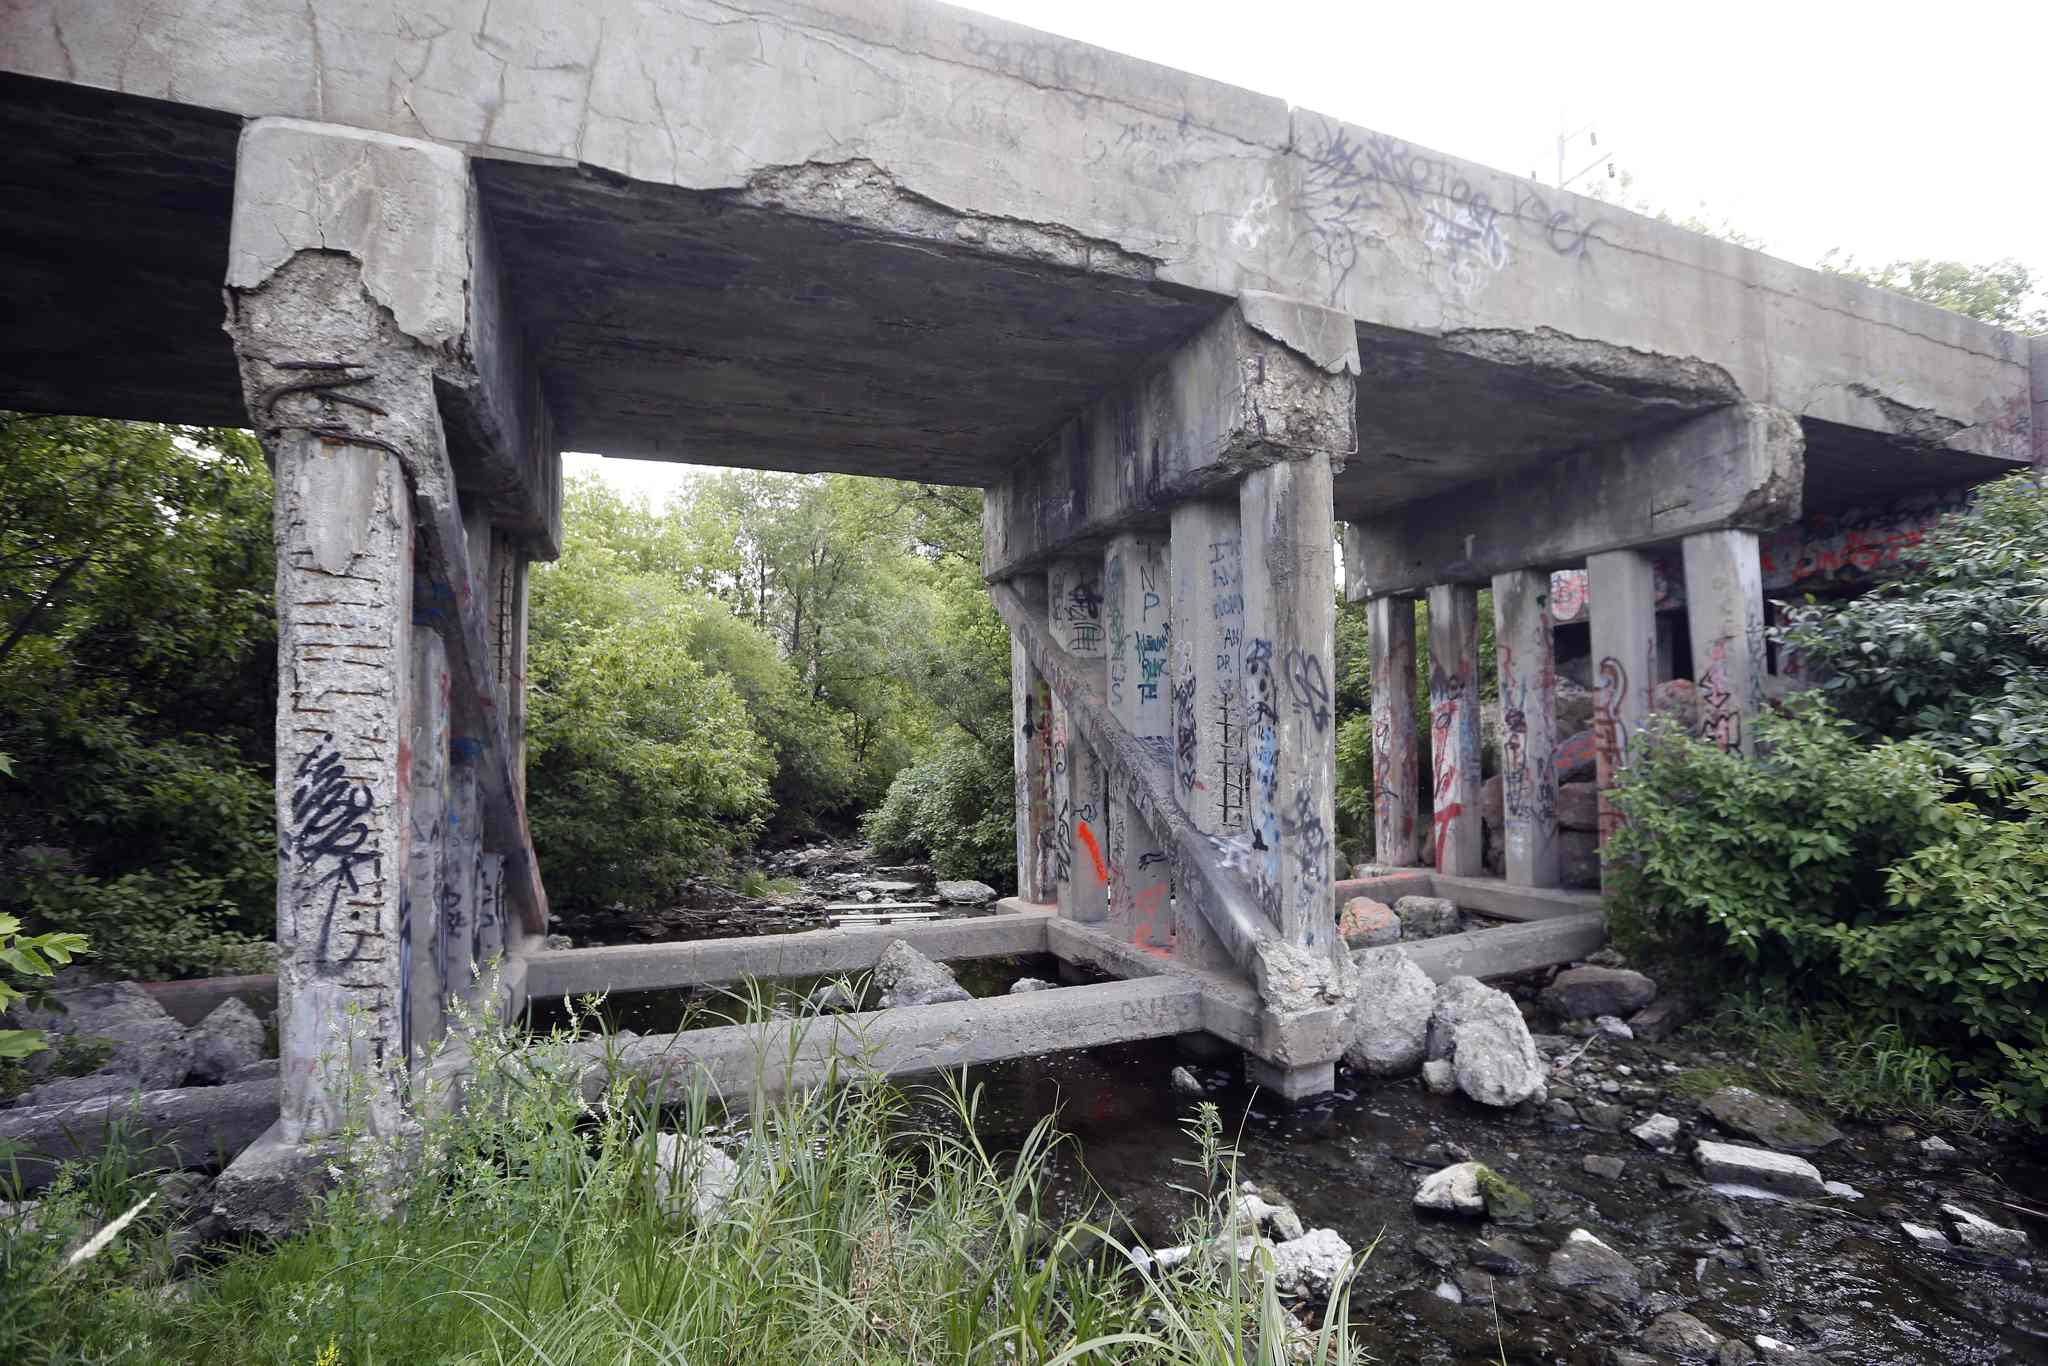 Three teens checked out the creek area under the railway bridge east of Empress Street and were assaulted and robbed on Saturday, July 12..